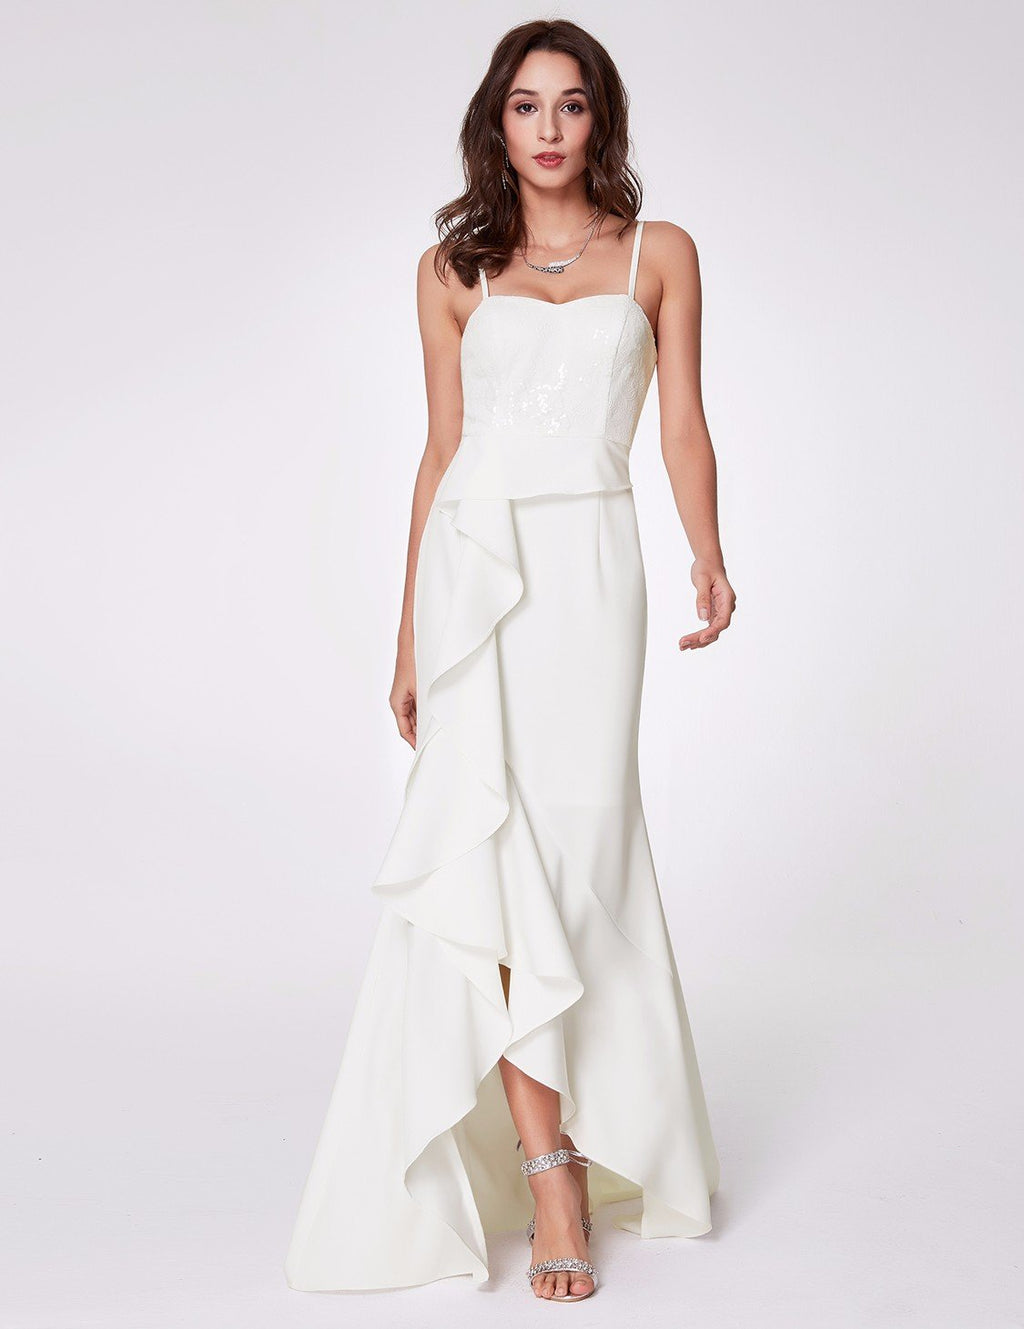 Spaghetti Straps Long Dress White